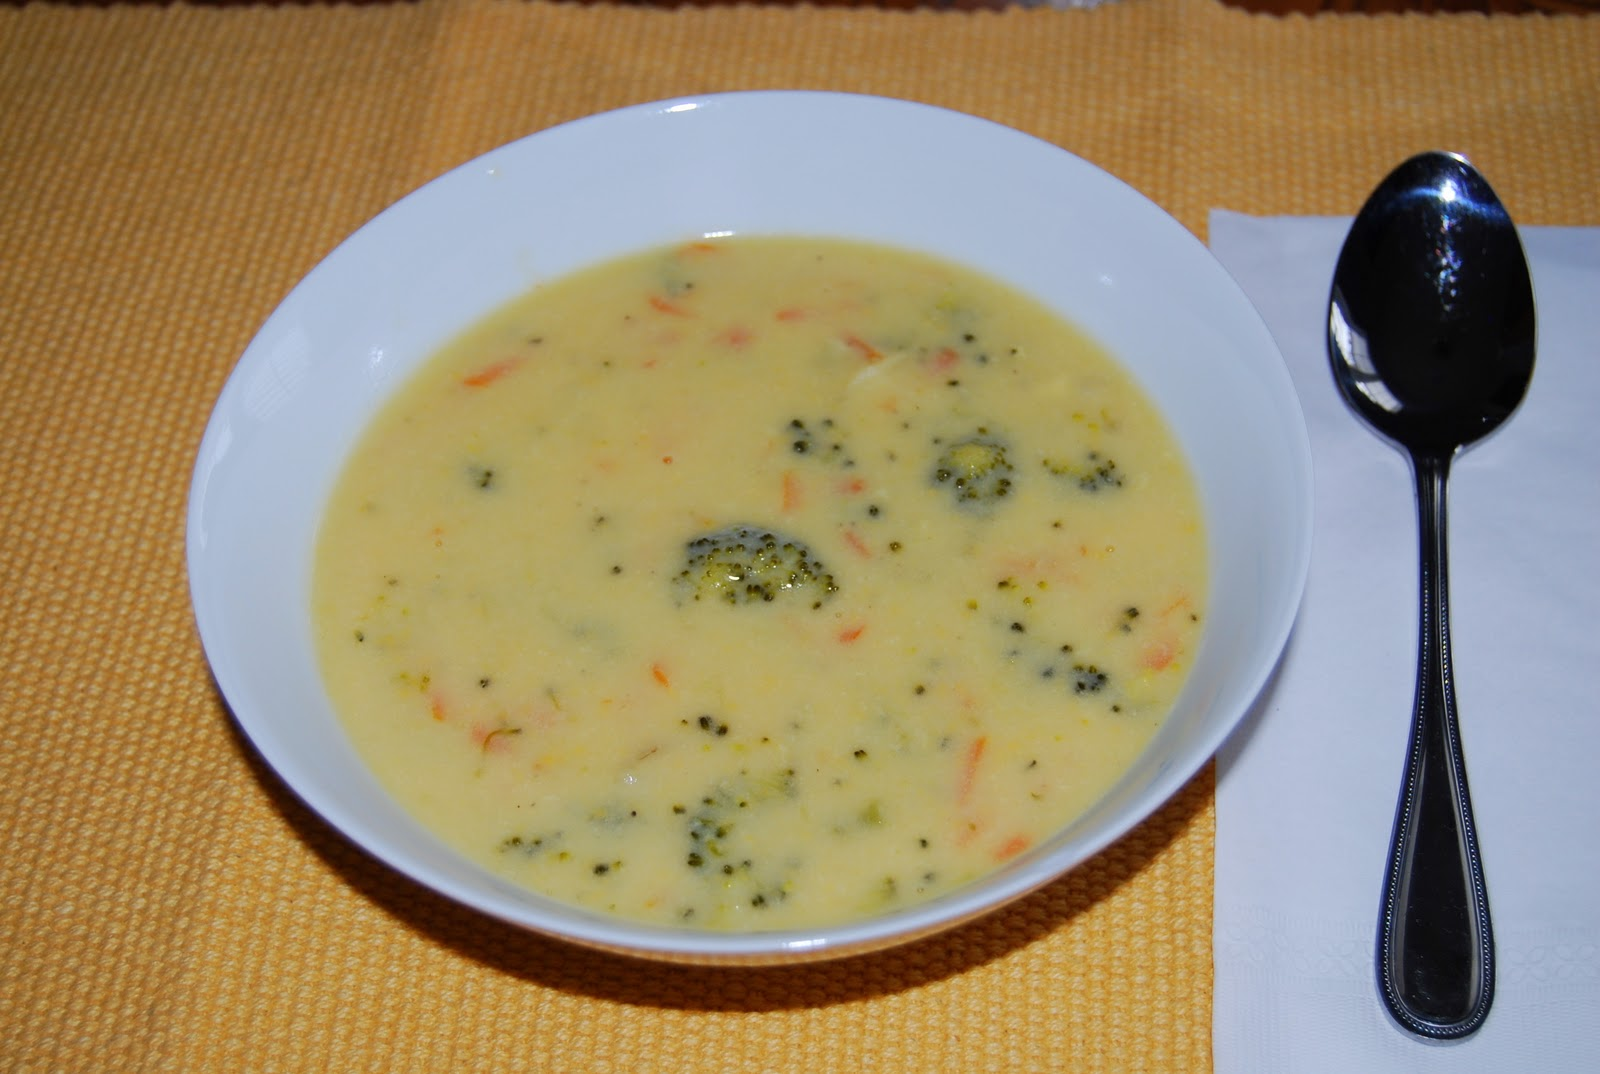 With Love from the Kitchen : Easy, Cheesy Broccoli Soup!